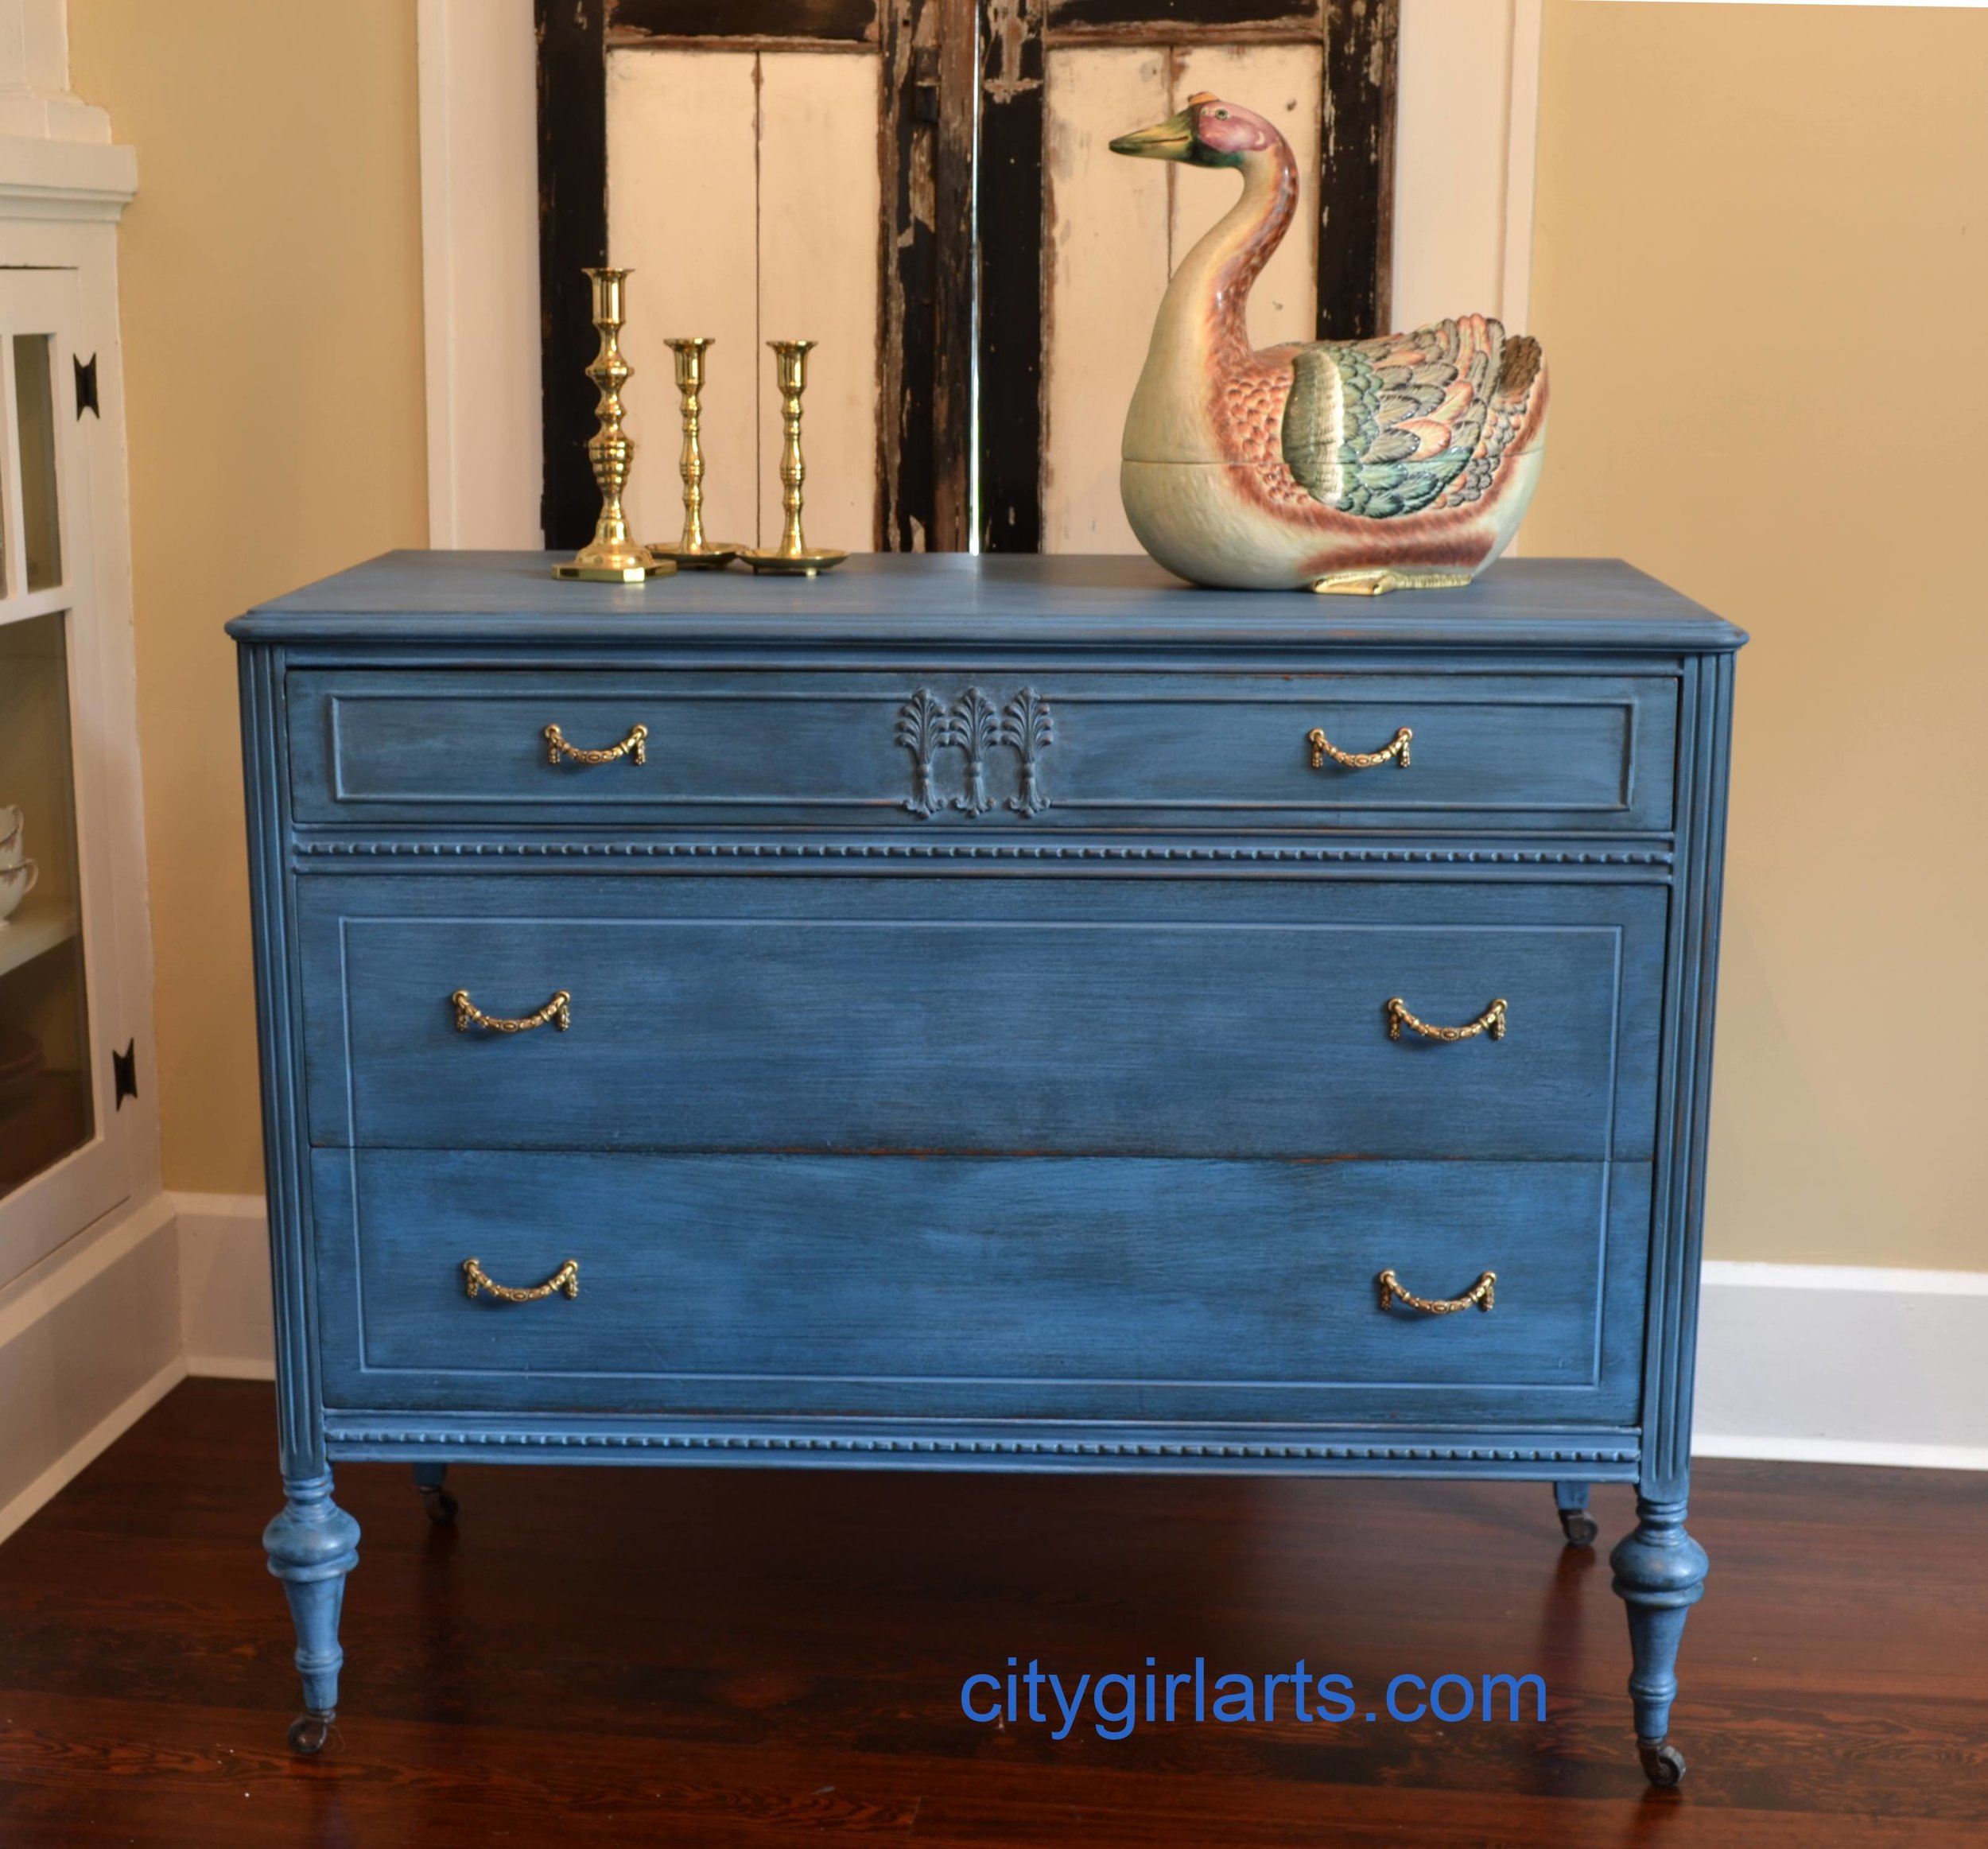 Garland Dresser in Blue Milk Paint